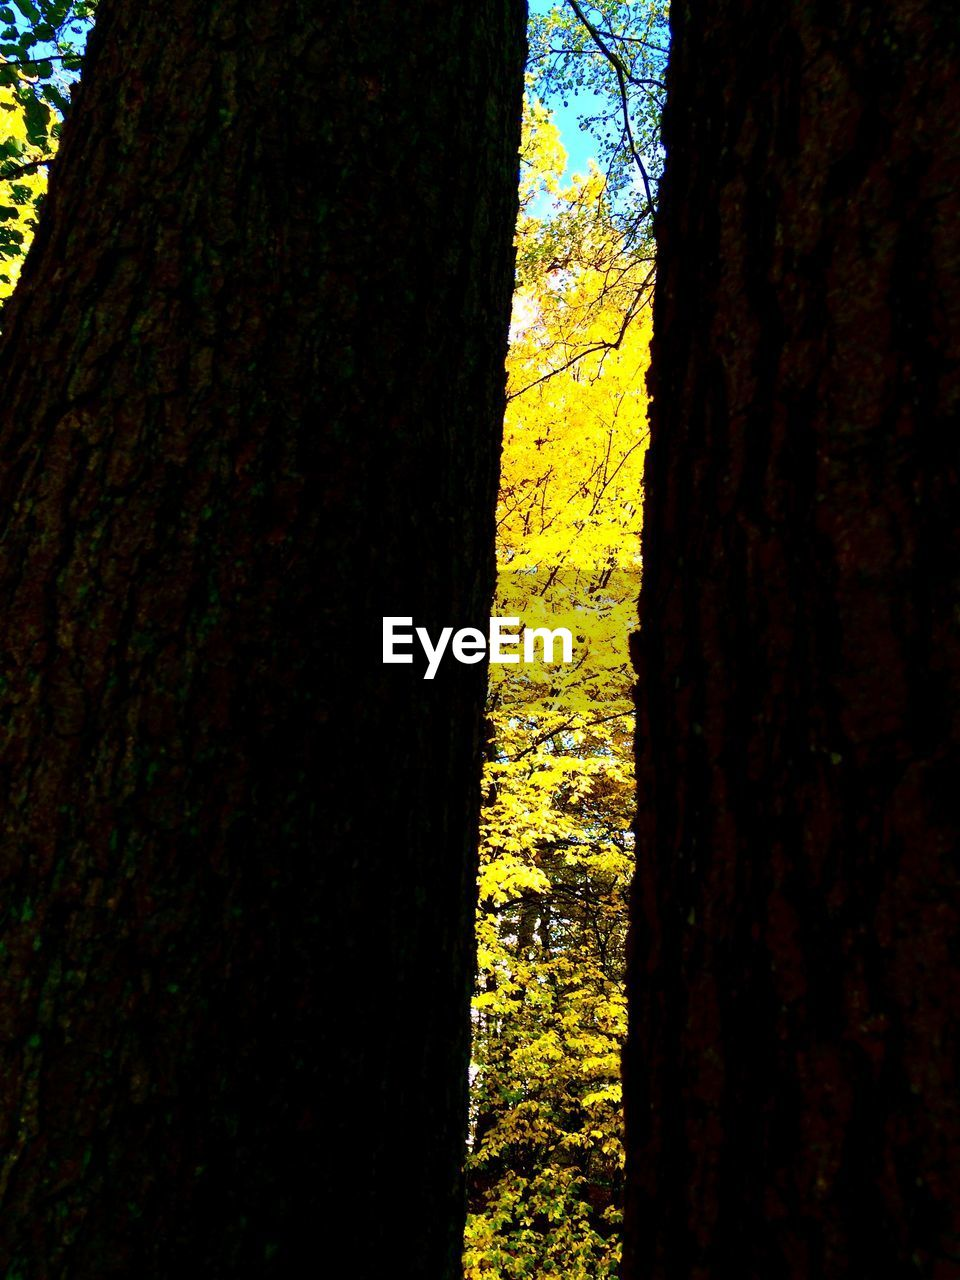 tree, tree trunk, nature, growth, day, yellow, no people, textured, outdoors, beauty in nature, forest, close-up, branch